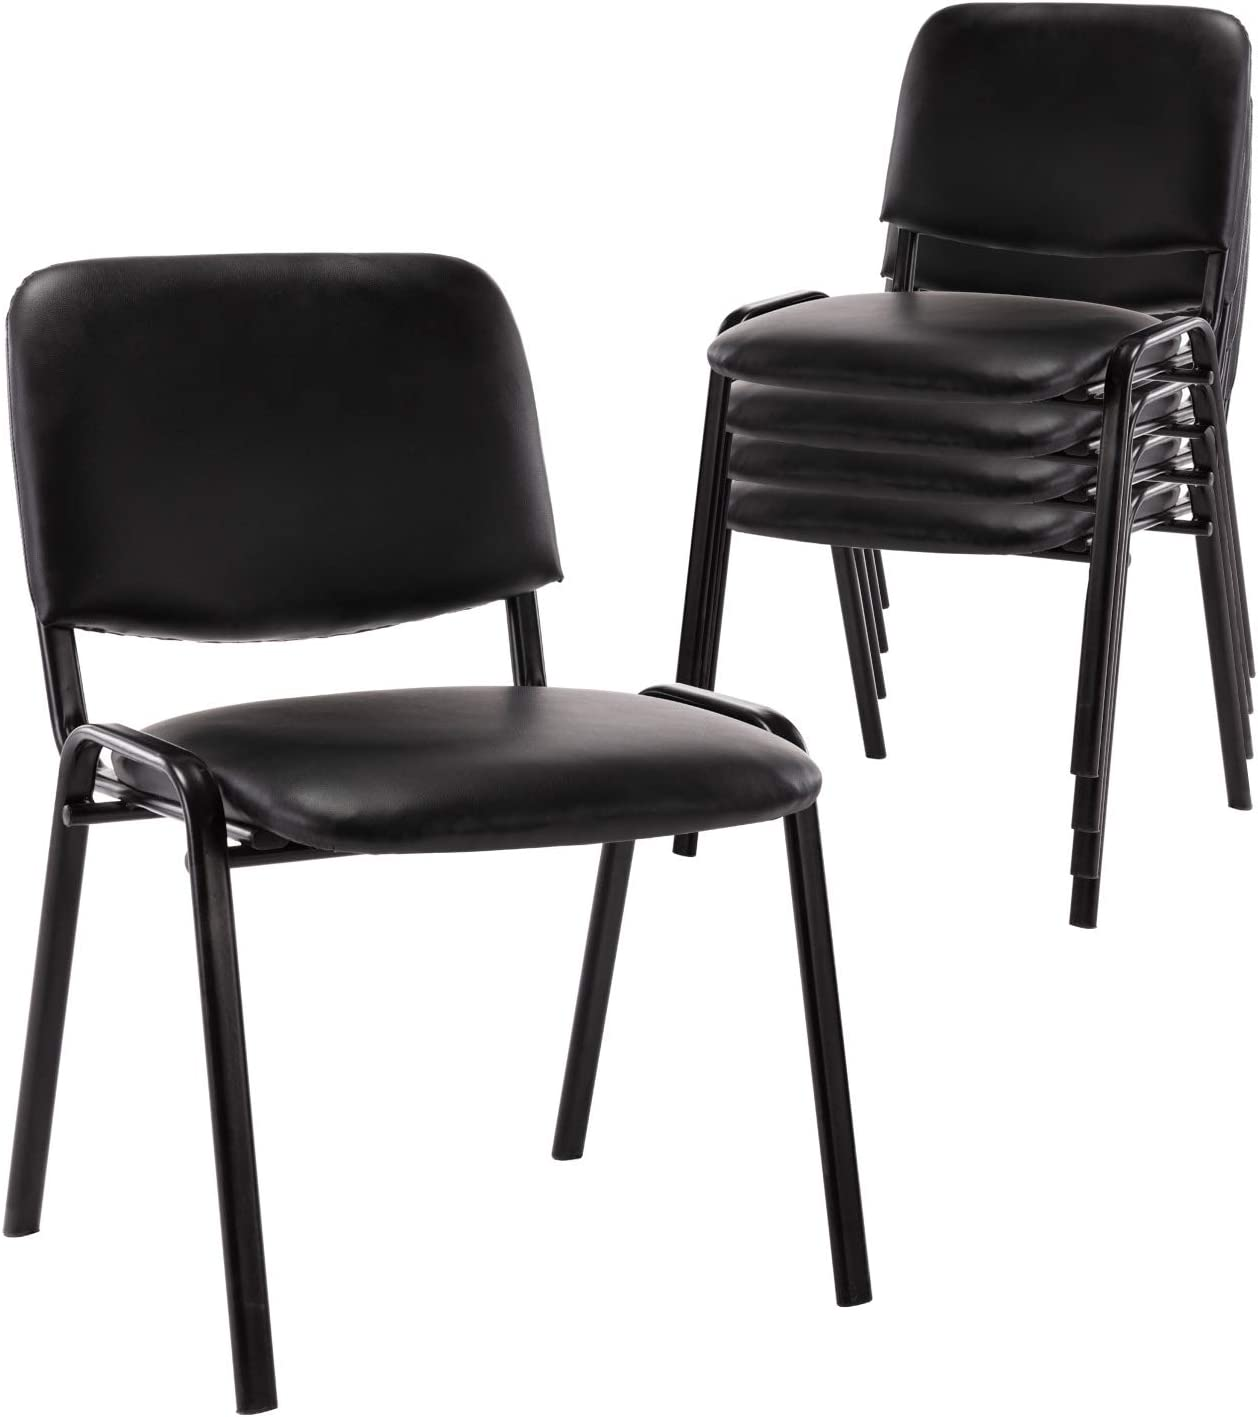 HEAH-YO Reception Chair Stacking Armless Office Mesh Outlet ☆ Free Shipping Conference Popular